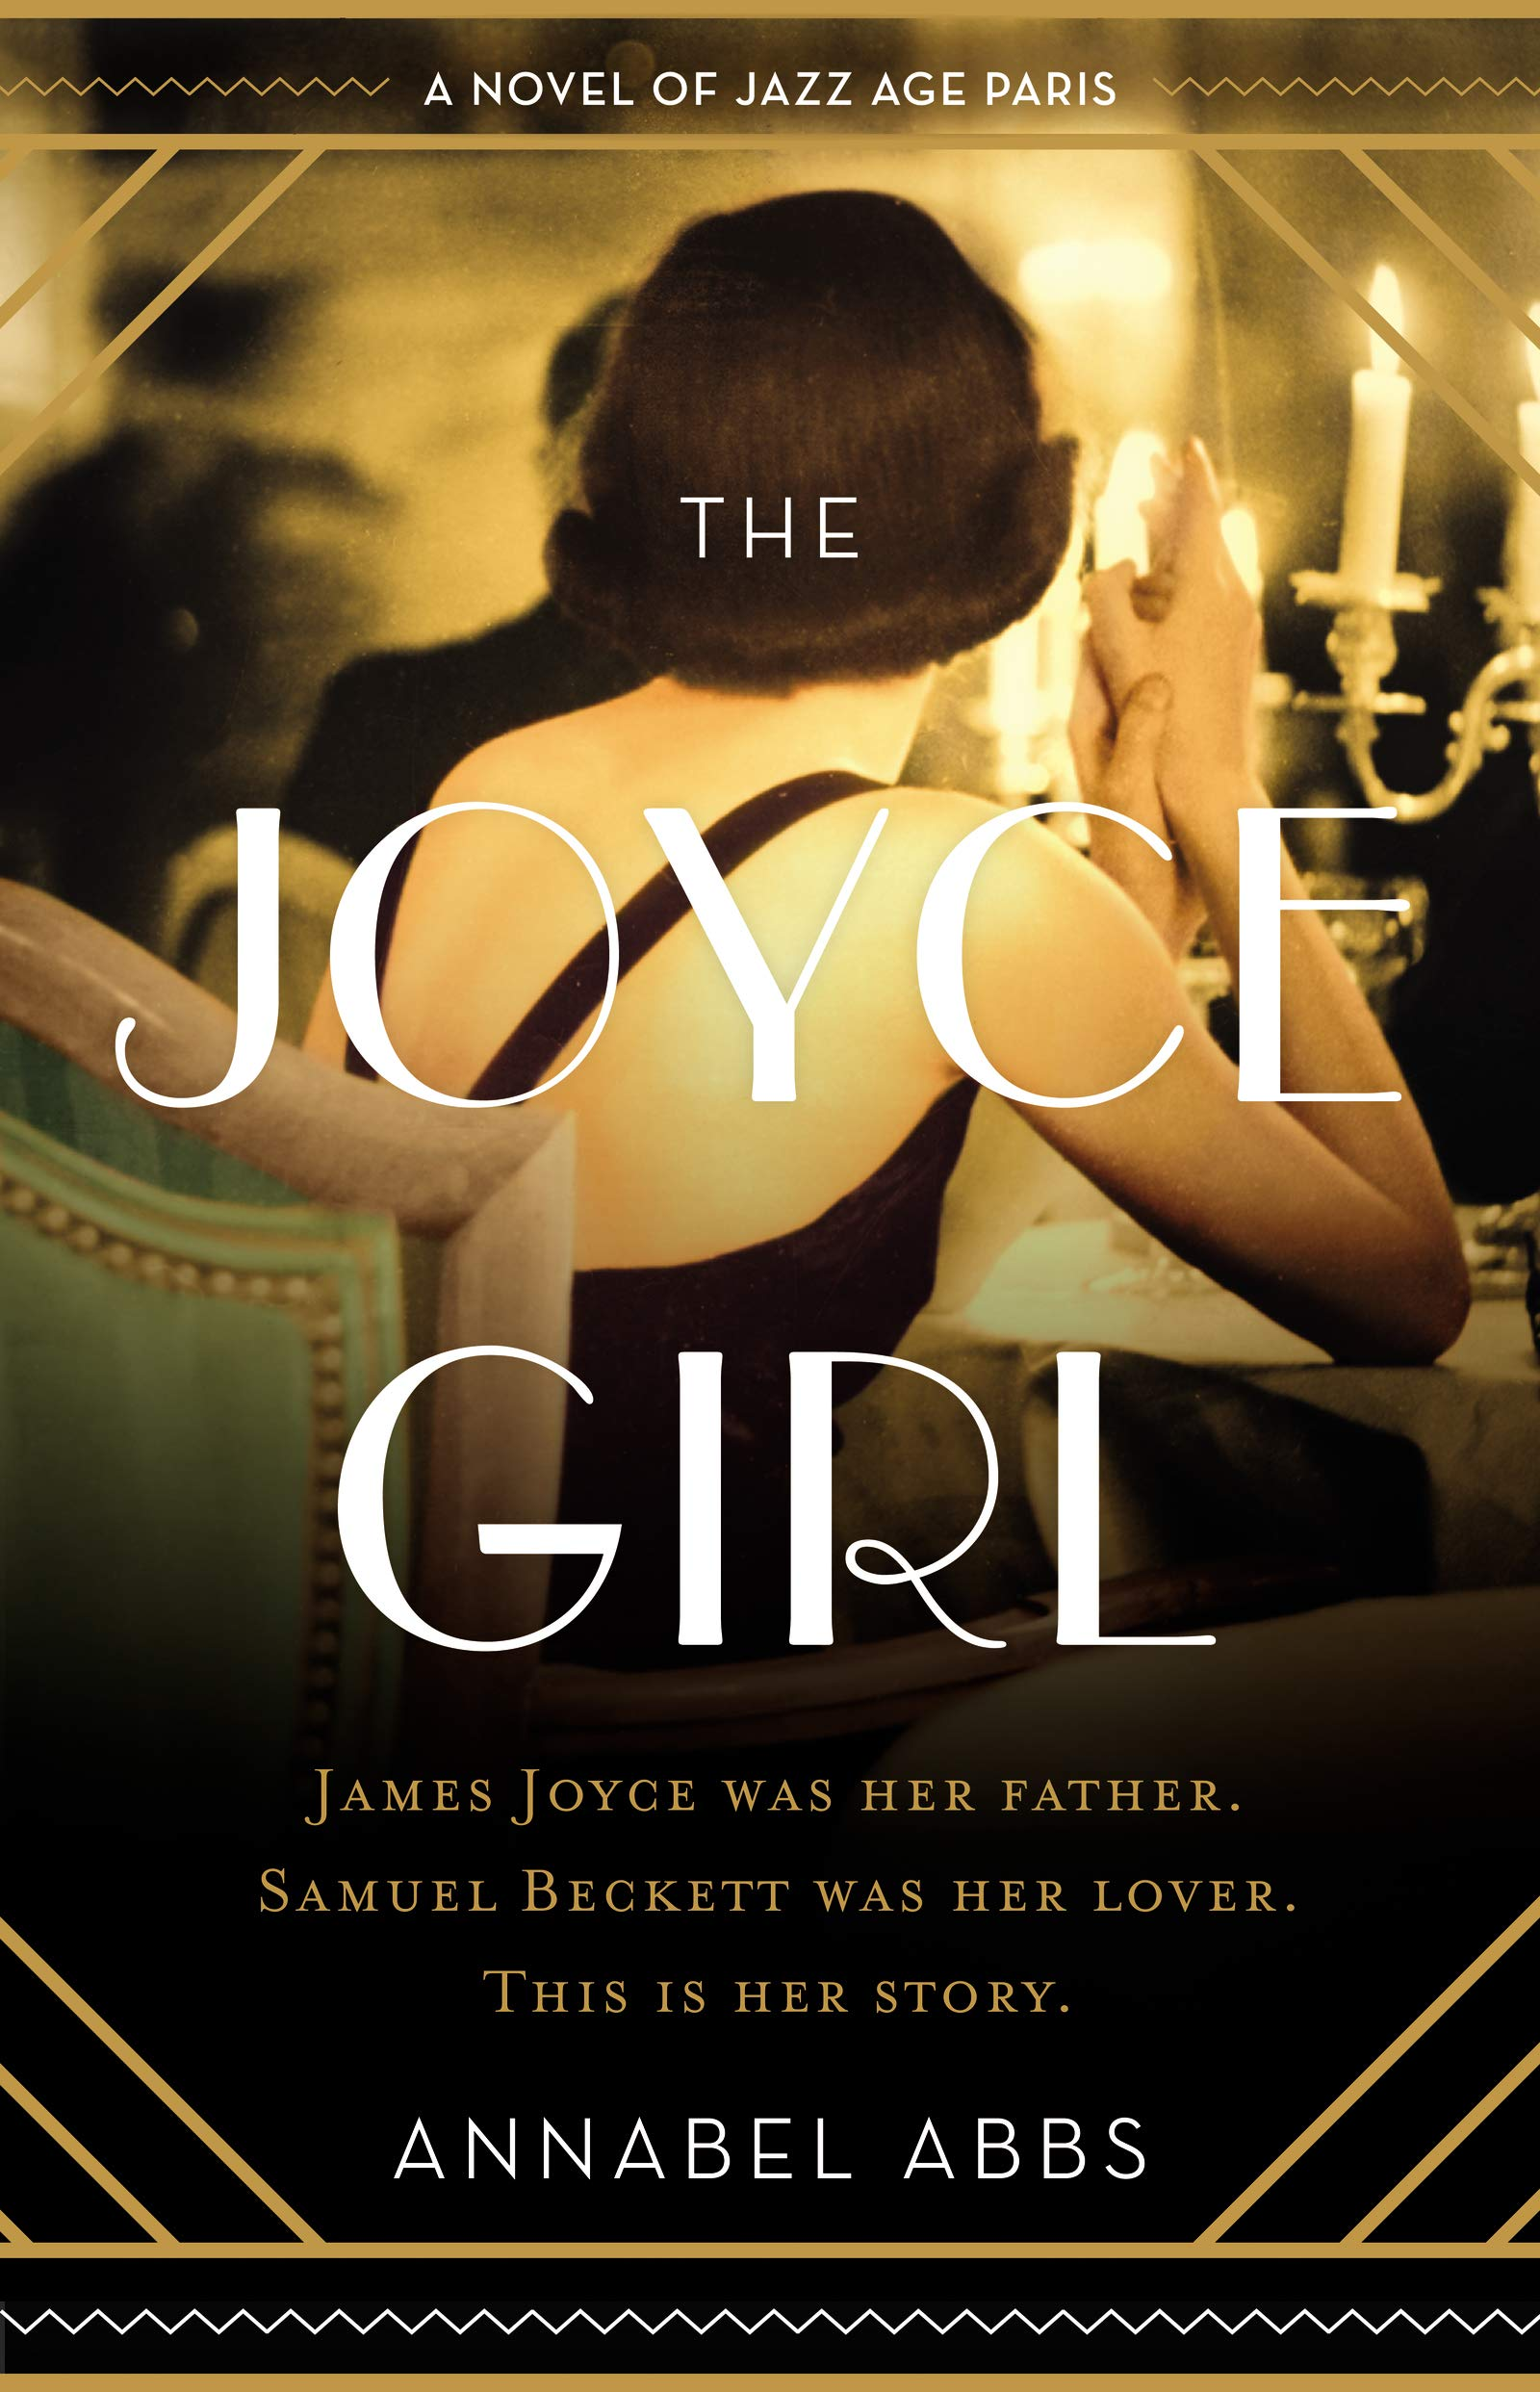 The Joyce Girl: A Novel of Jazz Age Paris